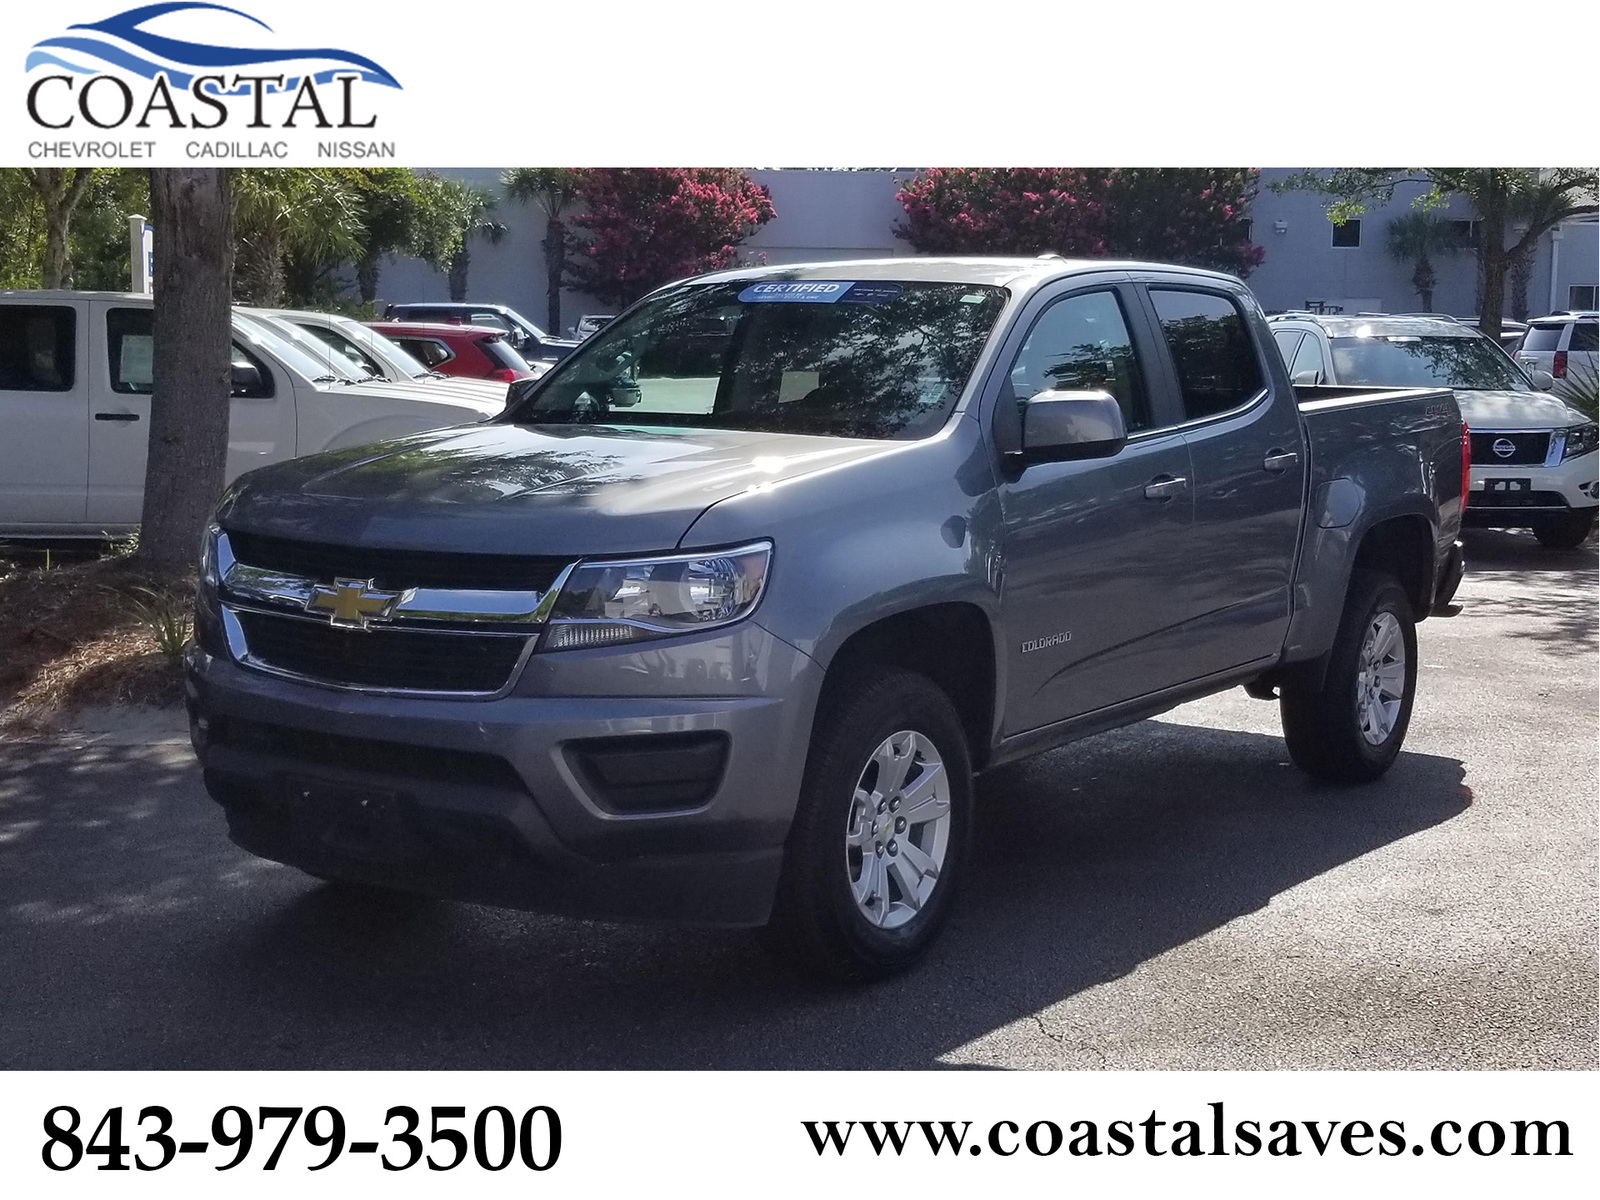 Certified Pre-Owned 2019 Chevrolet Colorado 4WD Crew Cab 128.3 LT